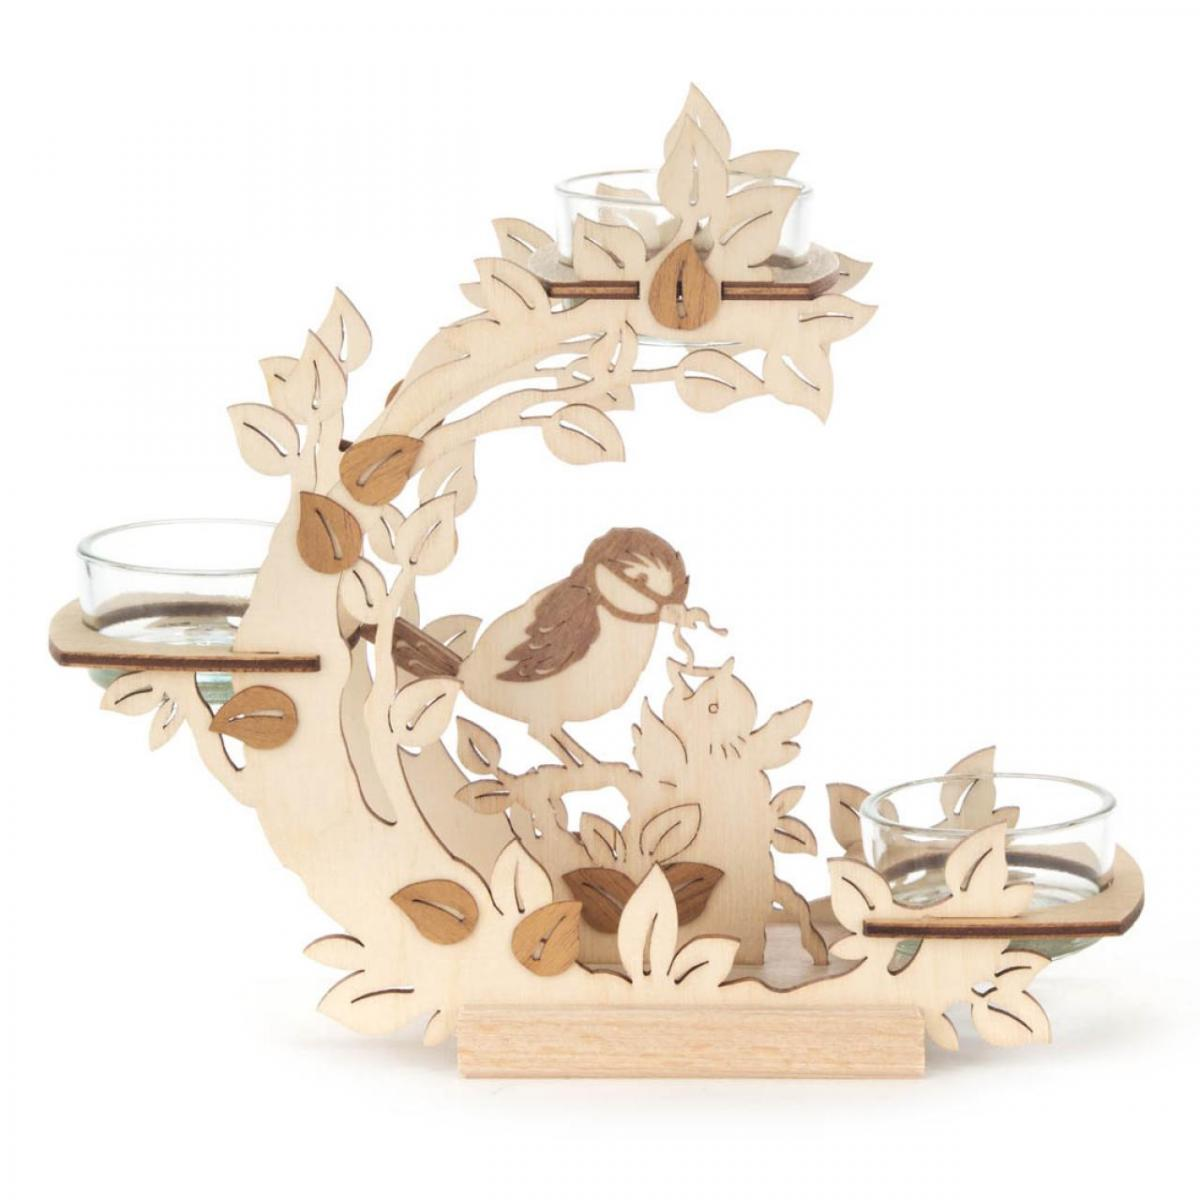 Candle Holder Flower Wreath with Birds